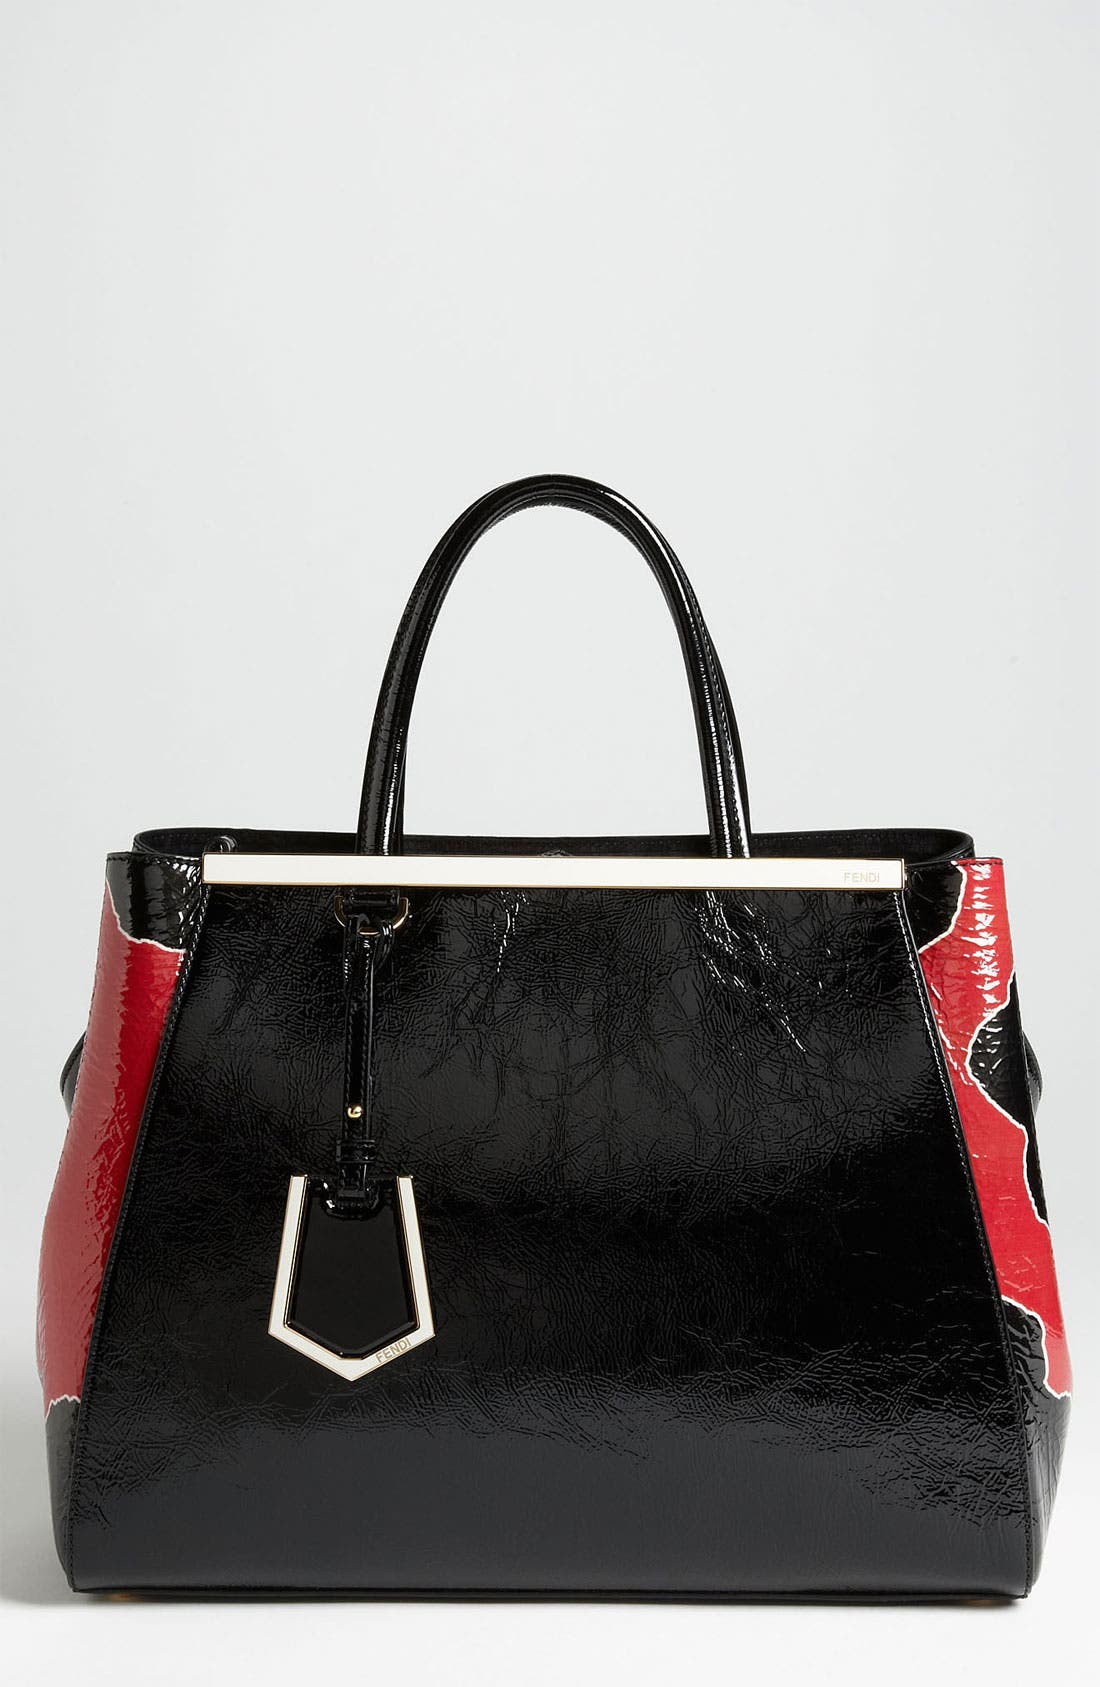 Main Image - Fendi '2Jours - Medium' Patent Leather Shopper